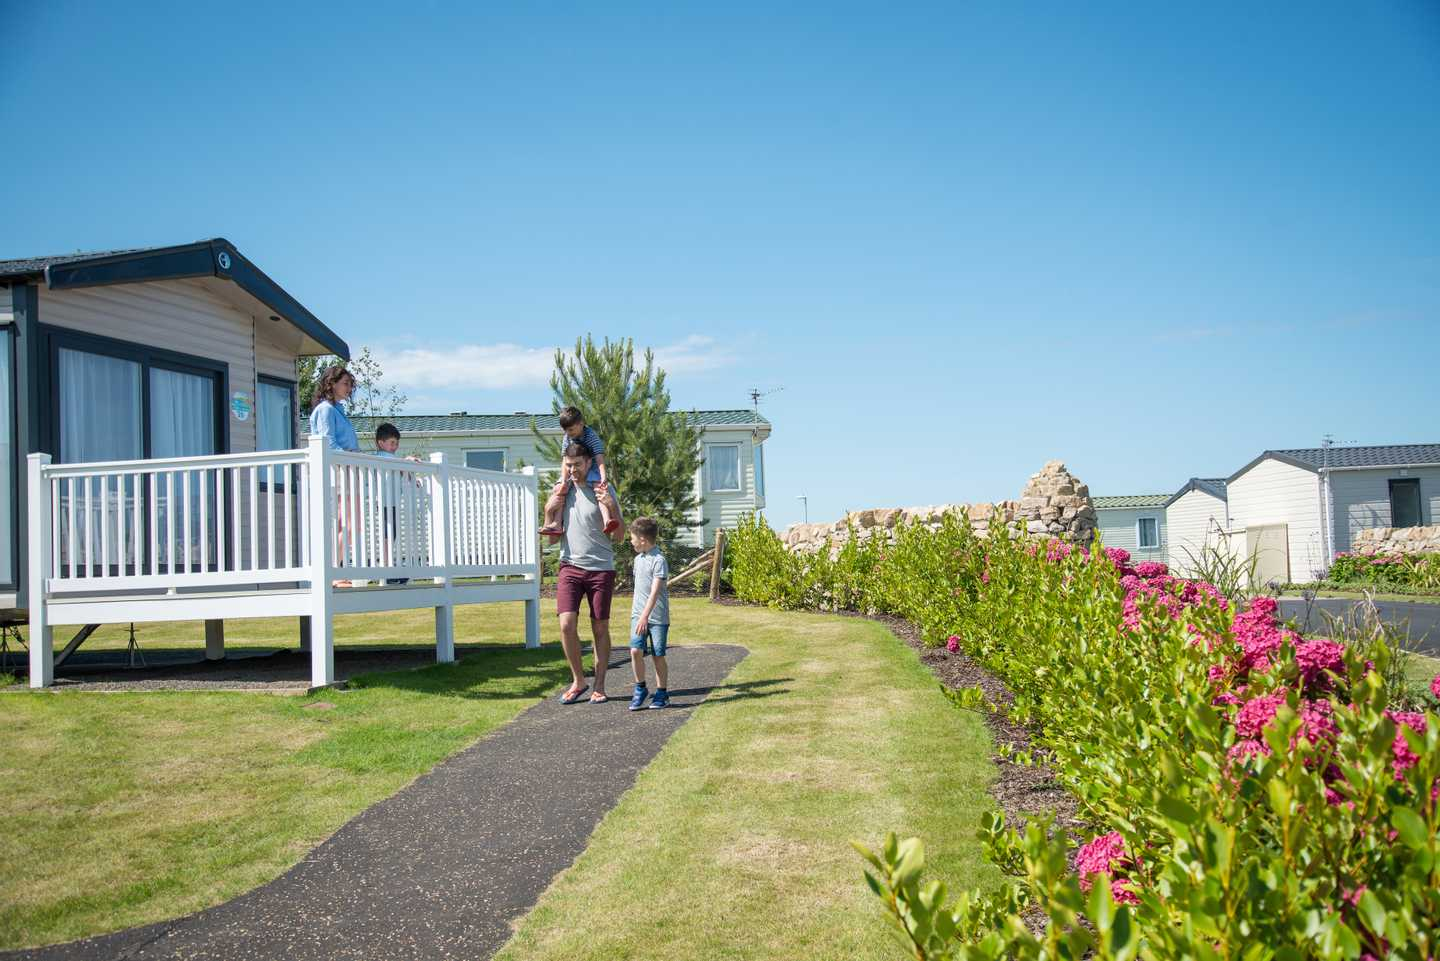 Holiday homes for sale in Rabbies Retreat at Craig Tara